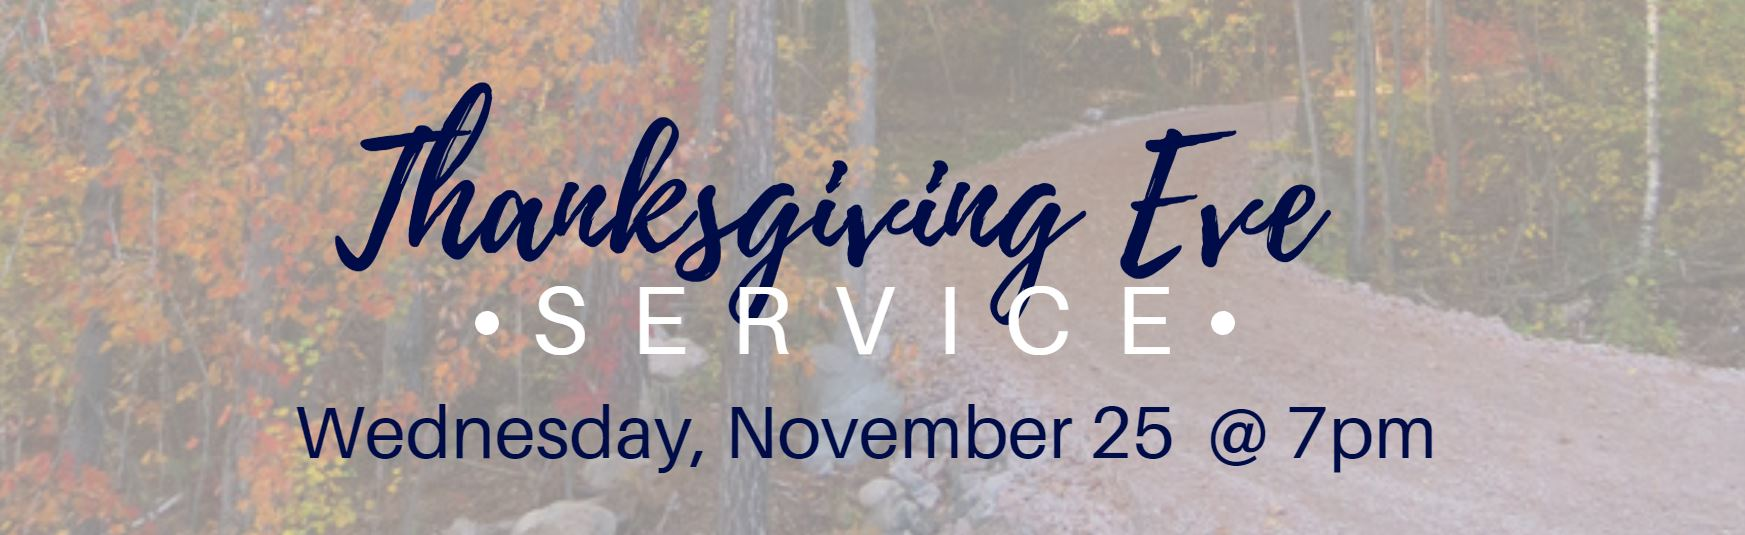 thanksgiving eve service 2020